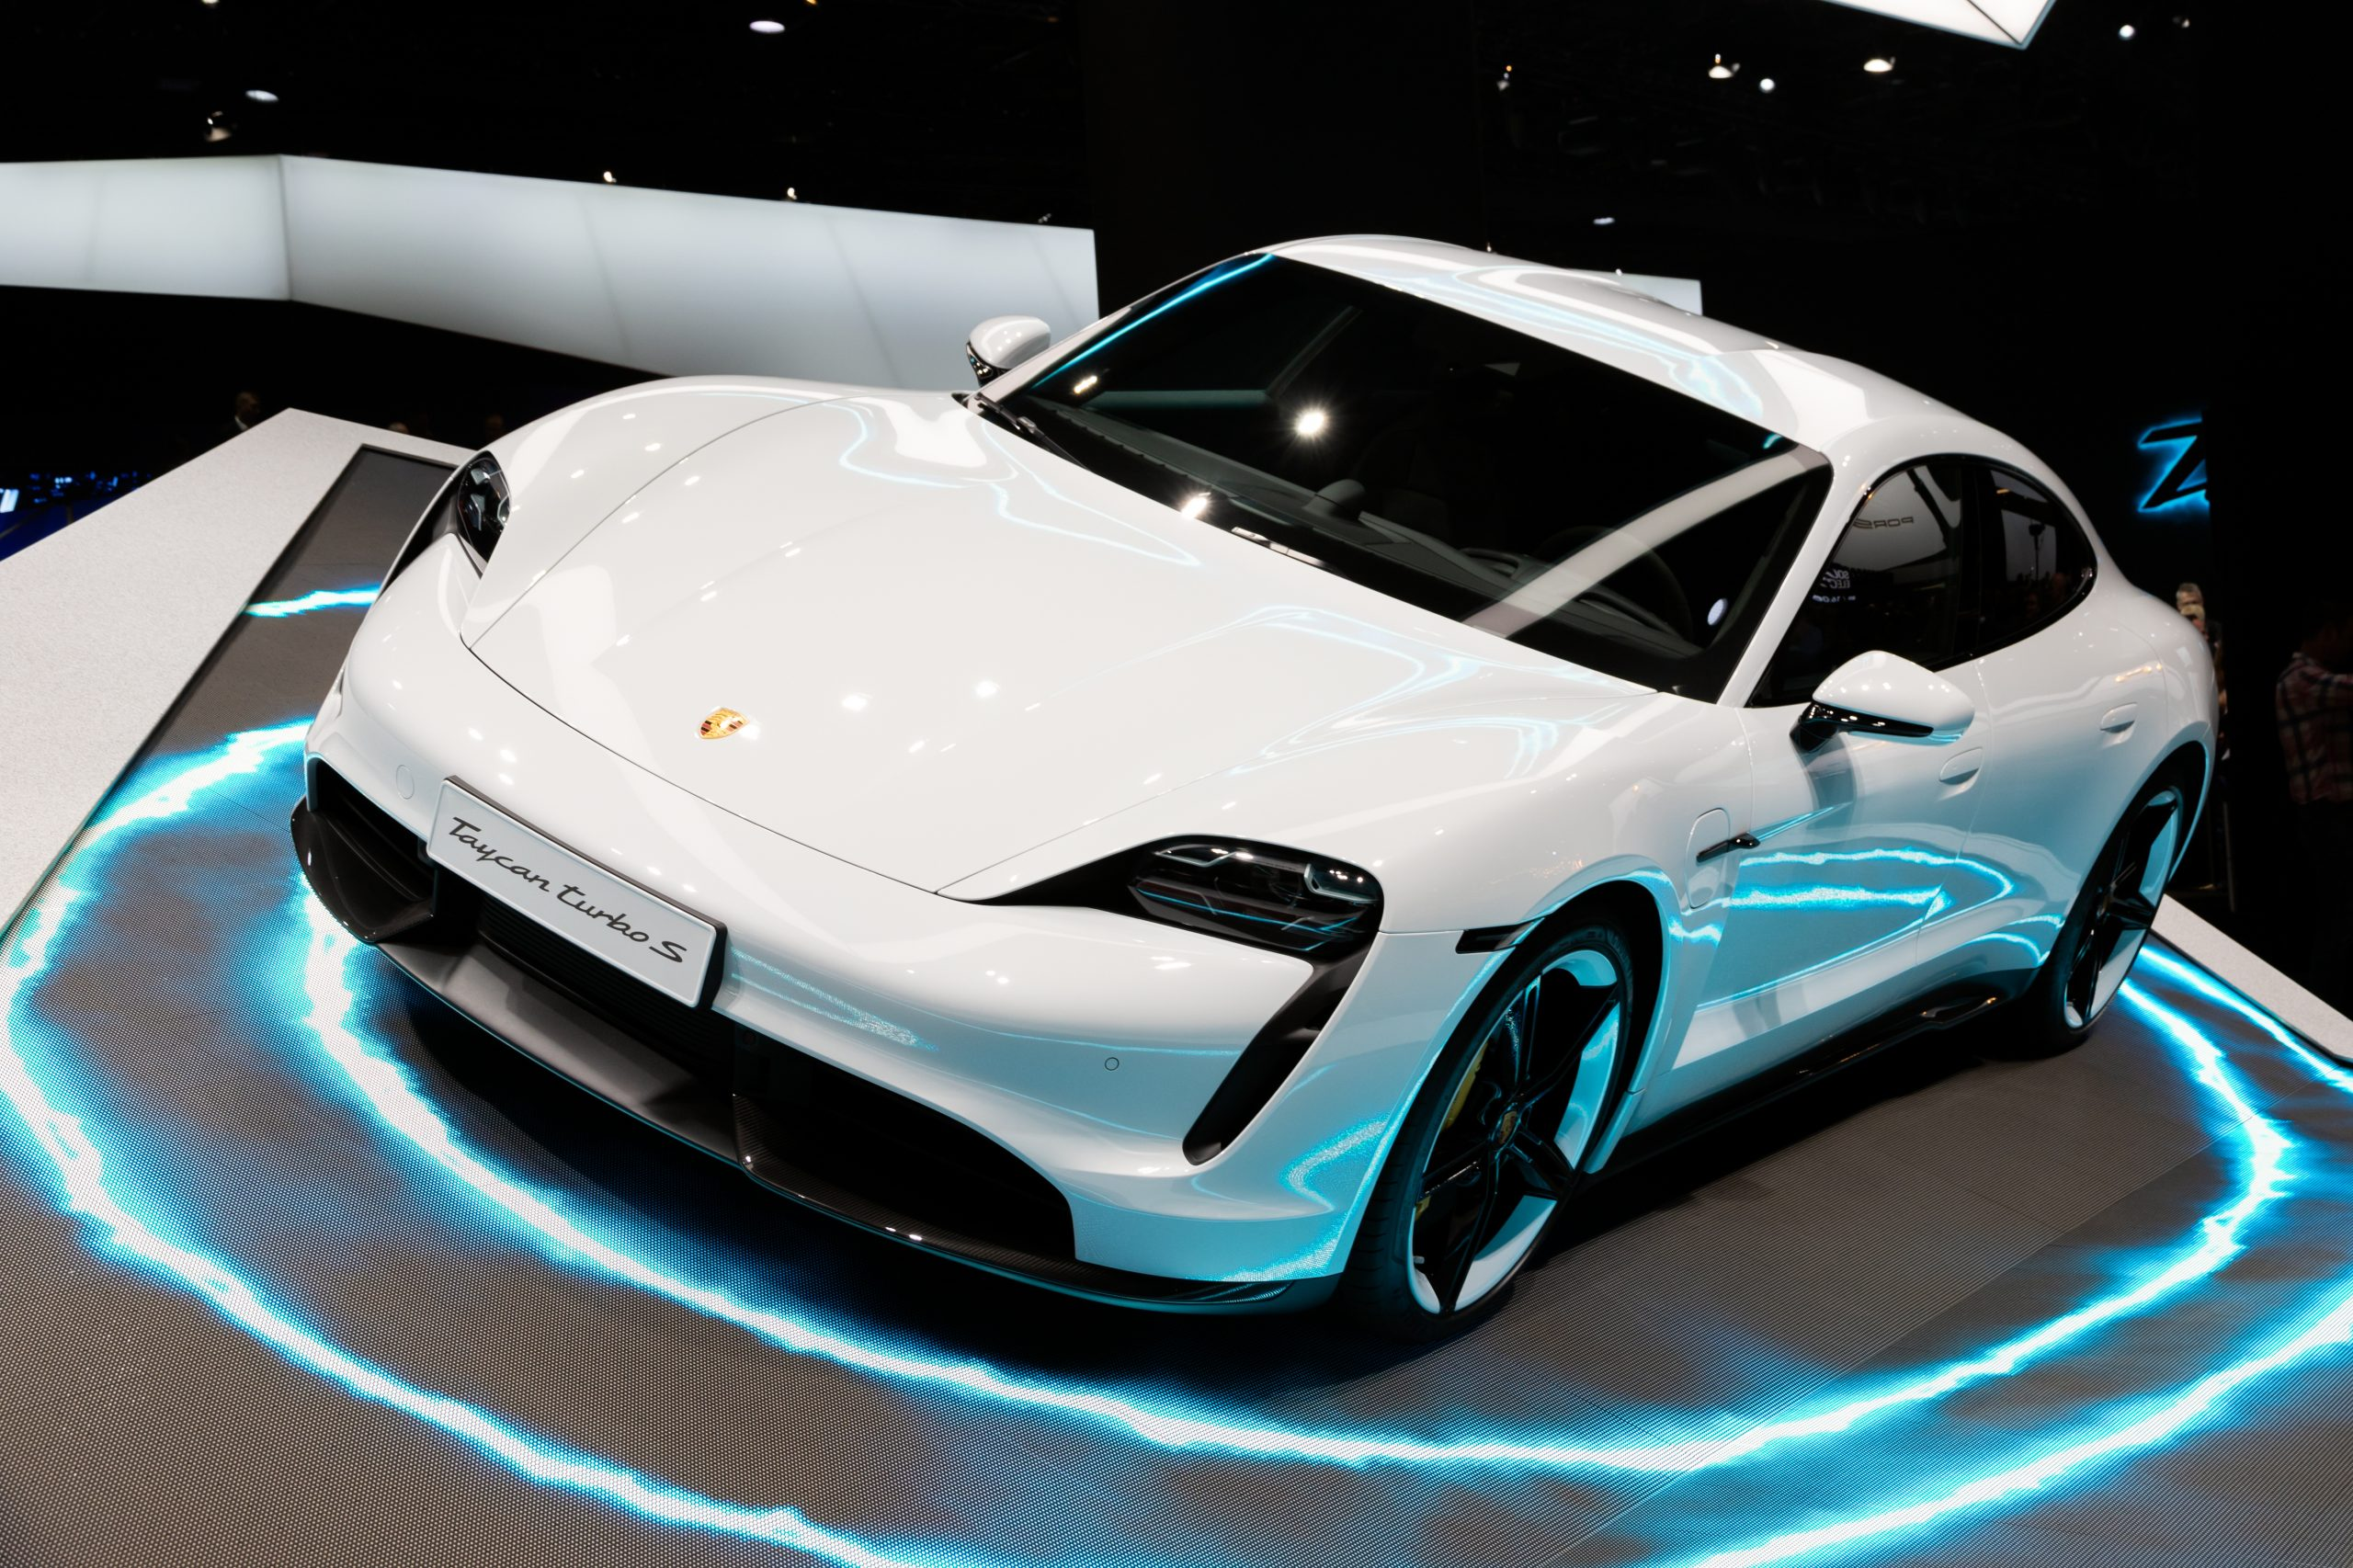 2021 Porsche Taycan Can Add Features Over The Air Fast Charge Without Fuss Emove360